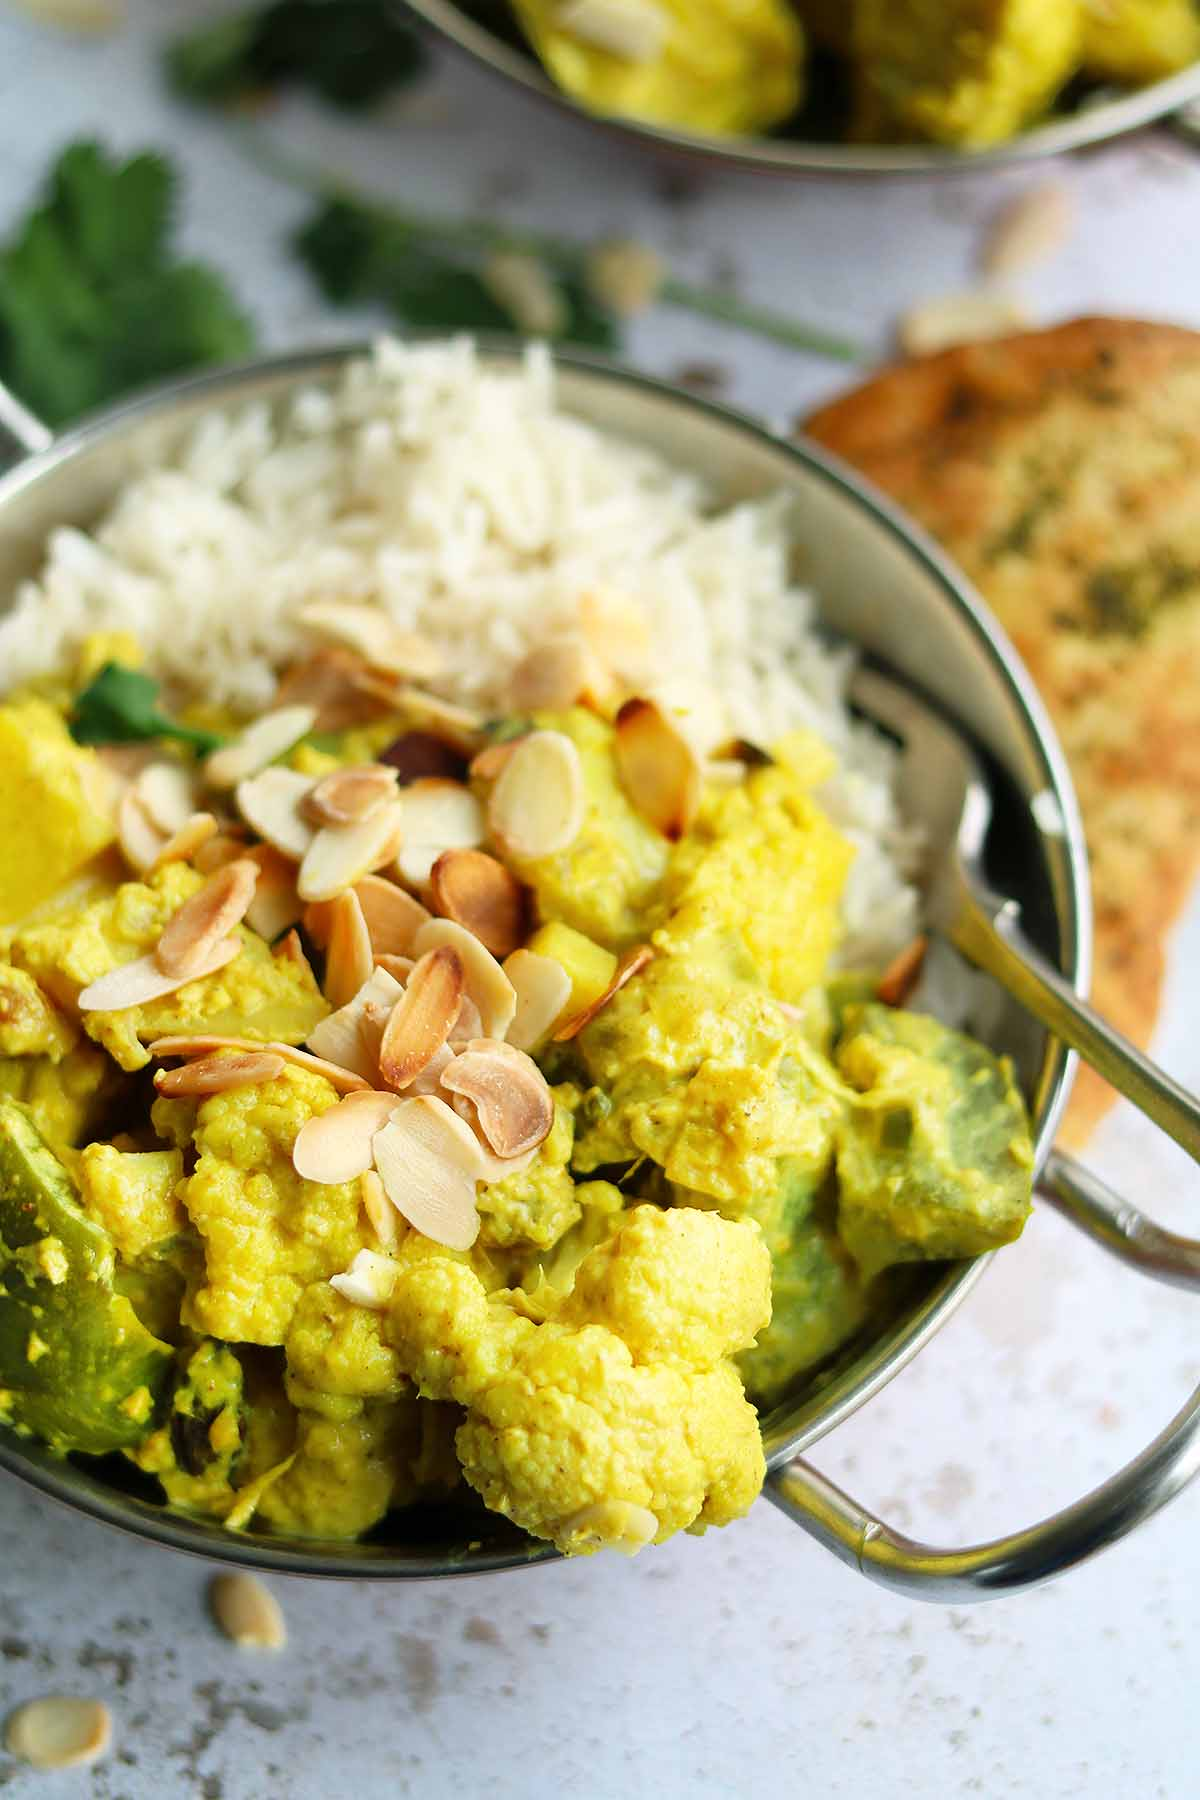 Cauliflower with green peppers, potatoes and sultanas covered in a korma sauce with coriander and almonds, served with rice.